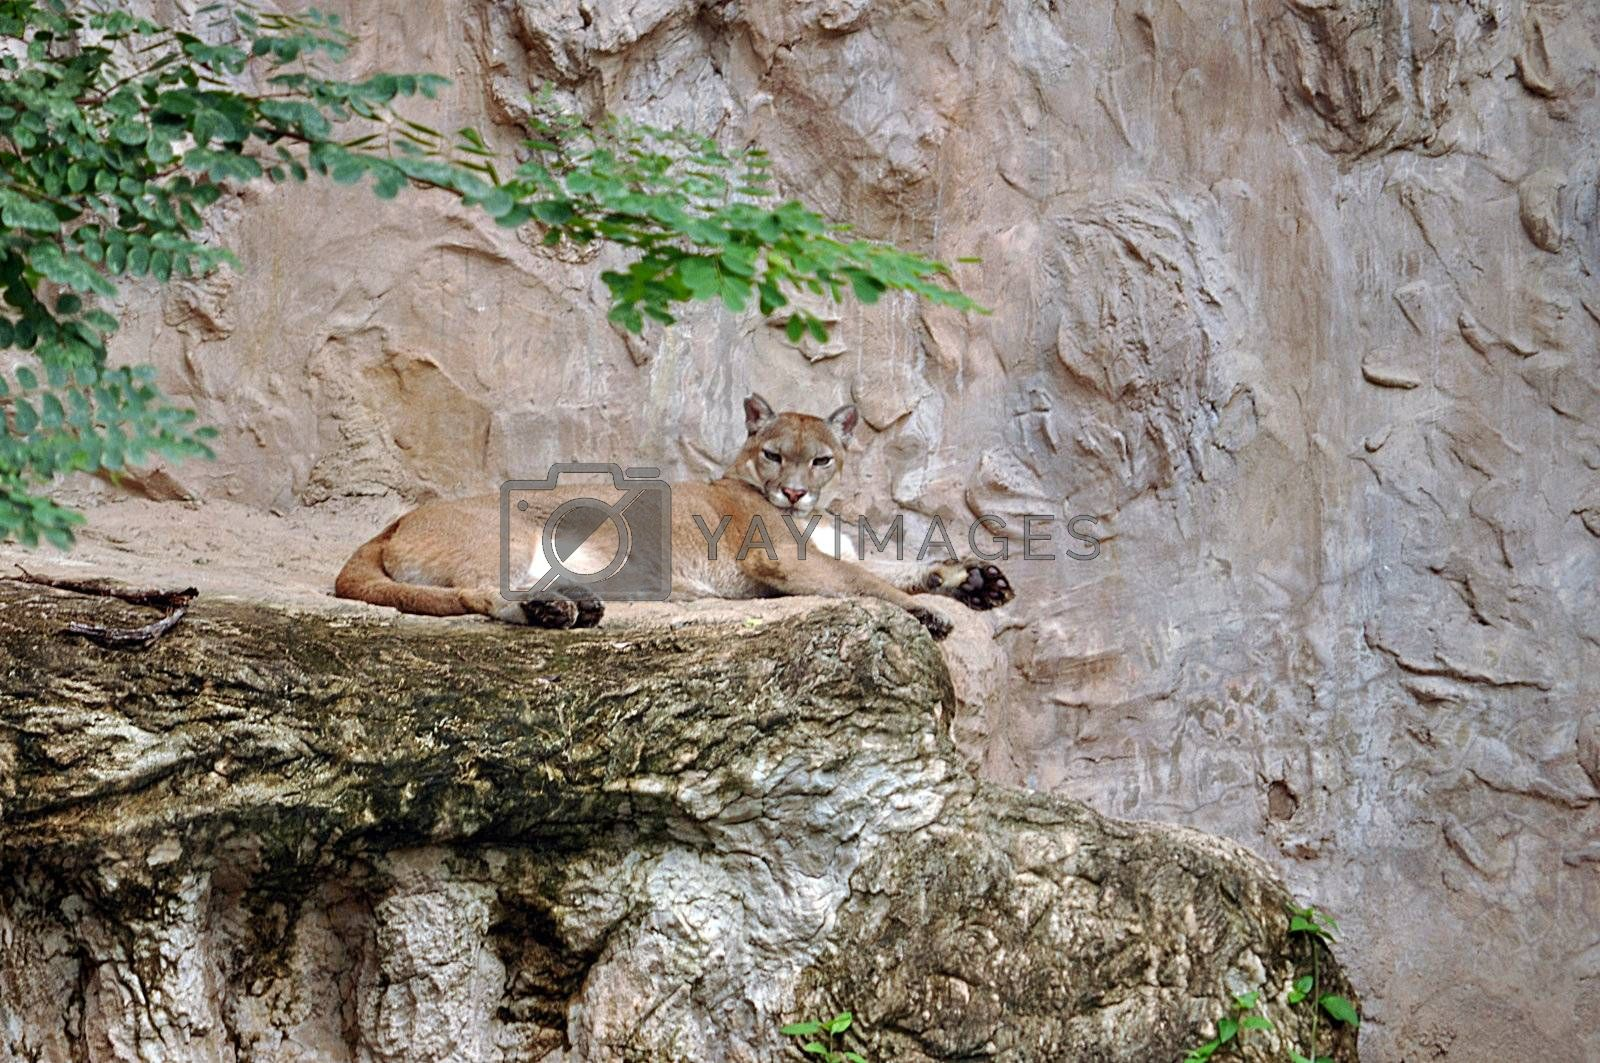 The cougar (Puma concolor), also known as puma, mountain lion, mountain cat, catamount or panther, depending on the region, is a mammal of the family Felidae, native to the Americas.